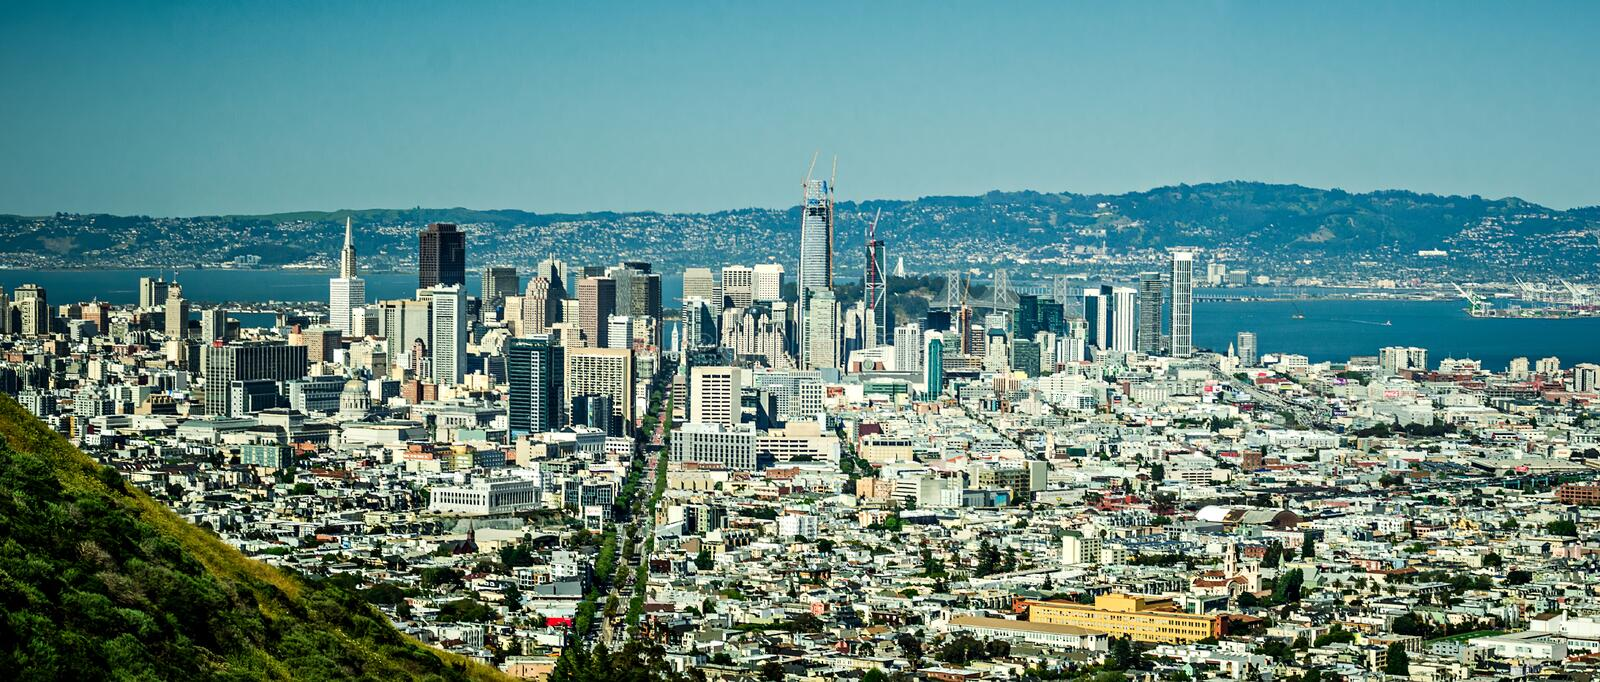 San francisco downtown city skyline in california royalty free stock image